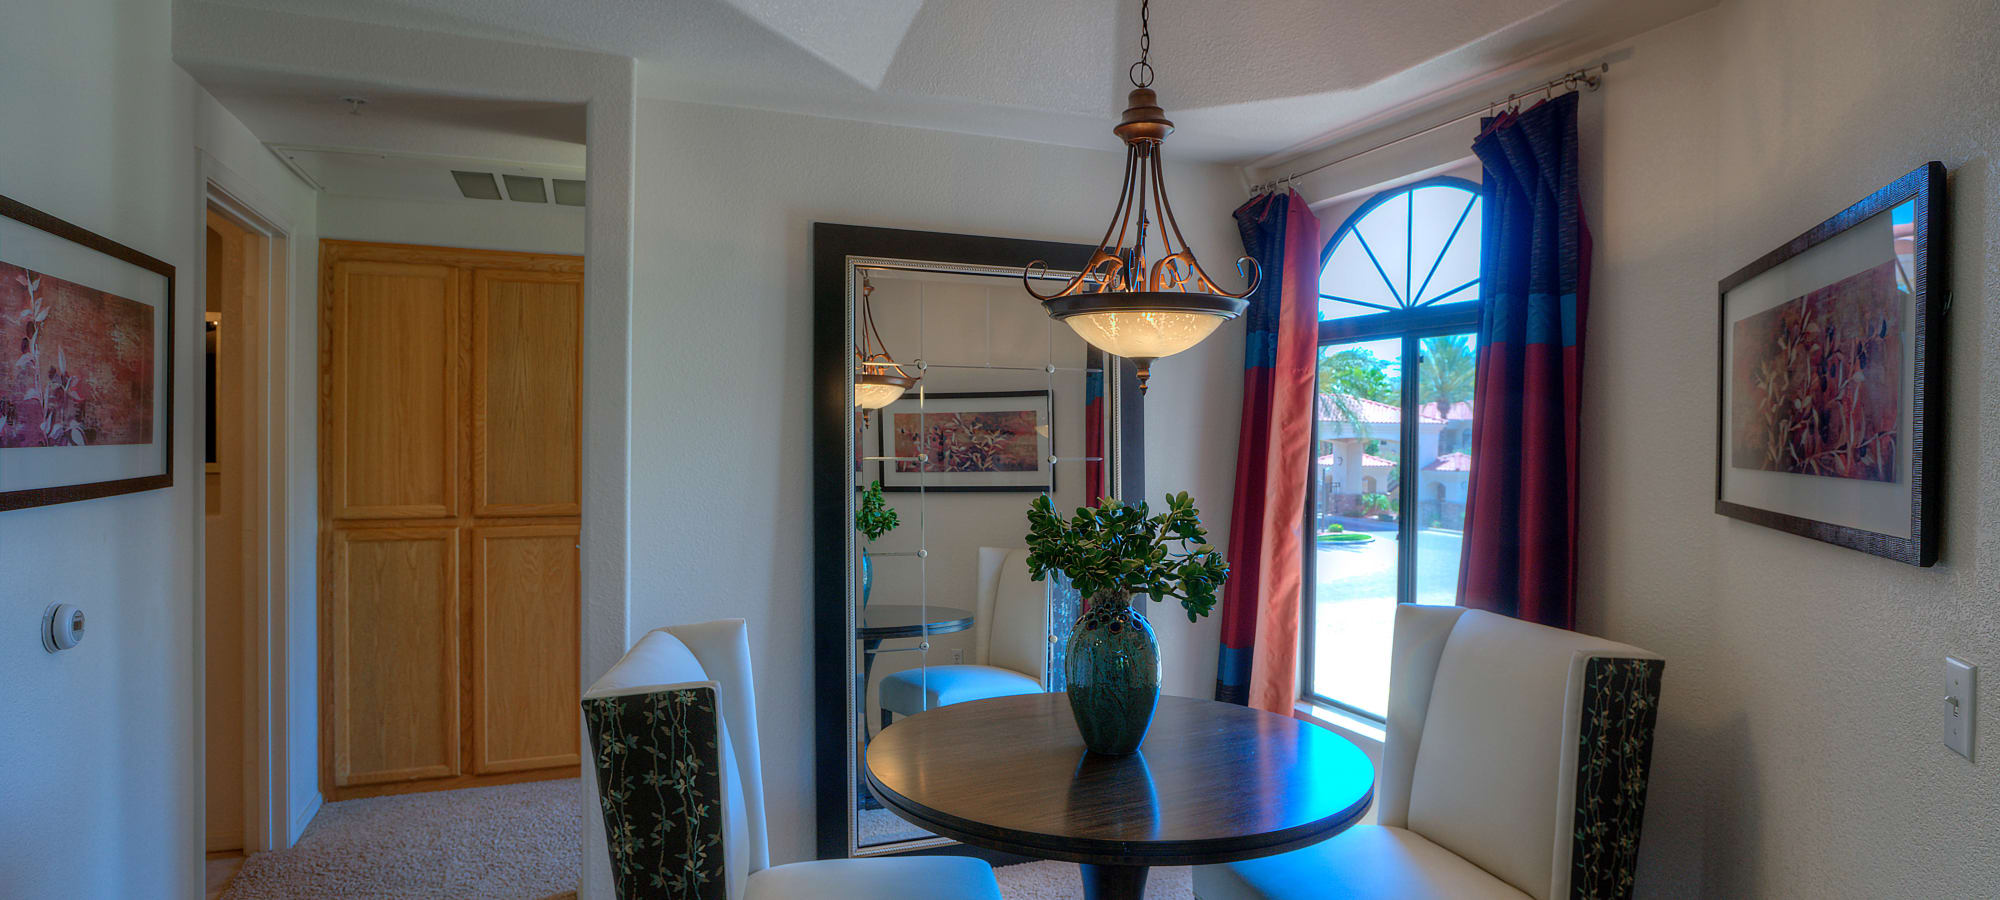 Small dining room table at San Cervantes in Chandler, Arizona